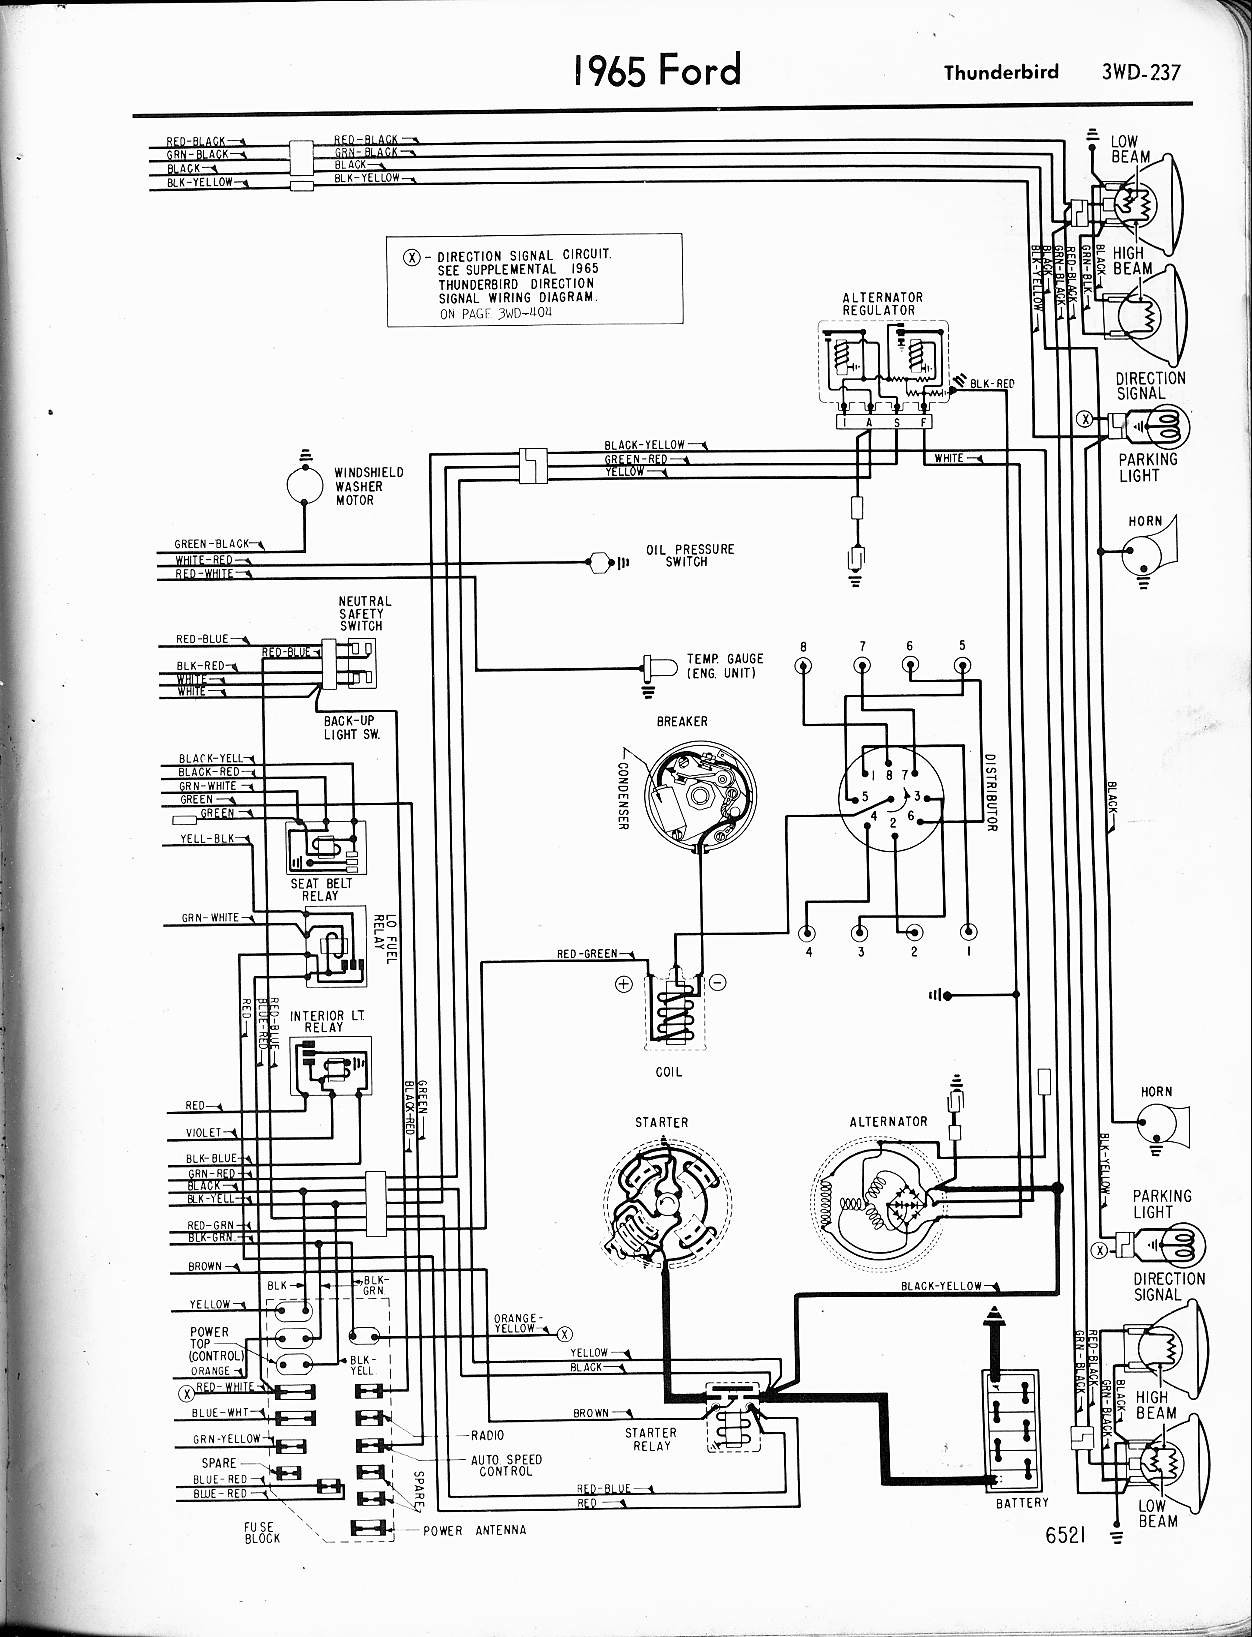 top of engine wiring 91 ford thunderbird circuit wiring and rh bdnewsmix com 1988 ford thunderbird radio wiring diagram